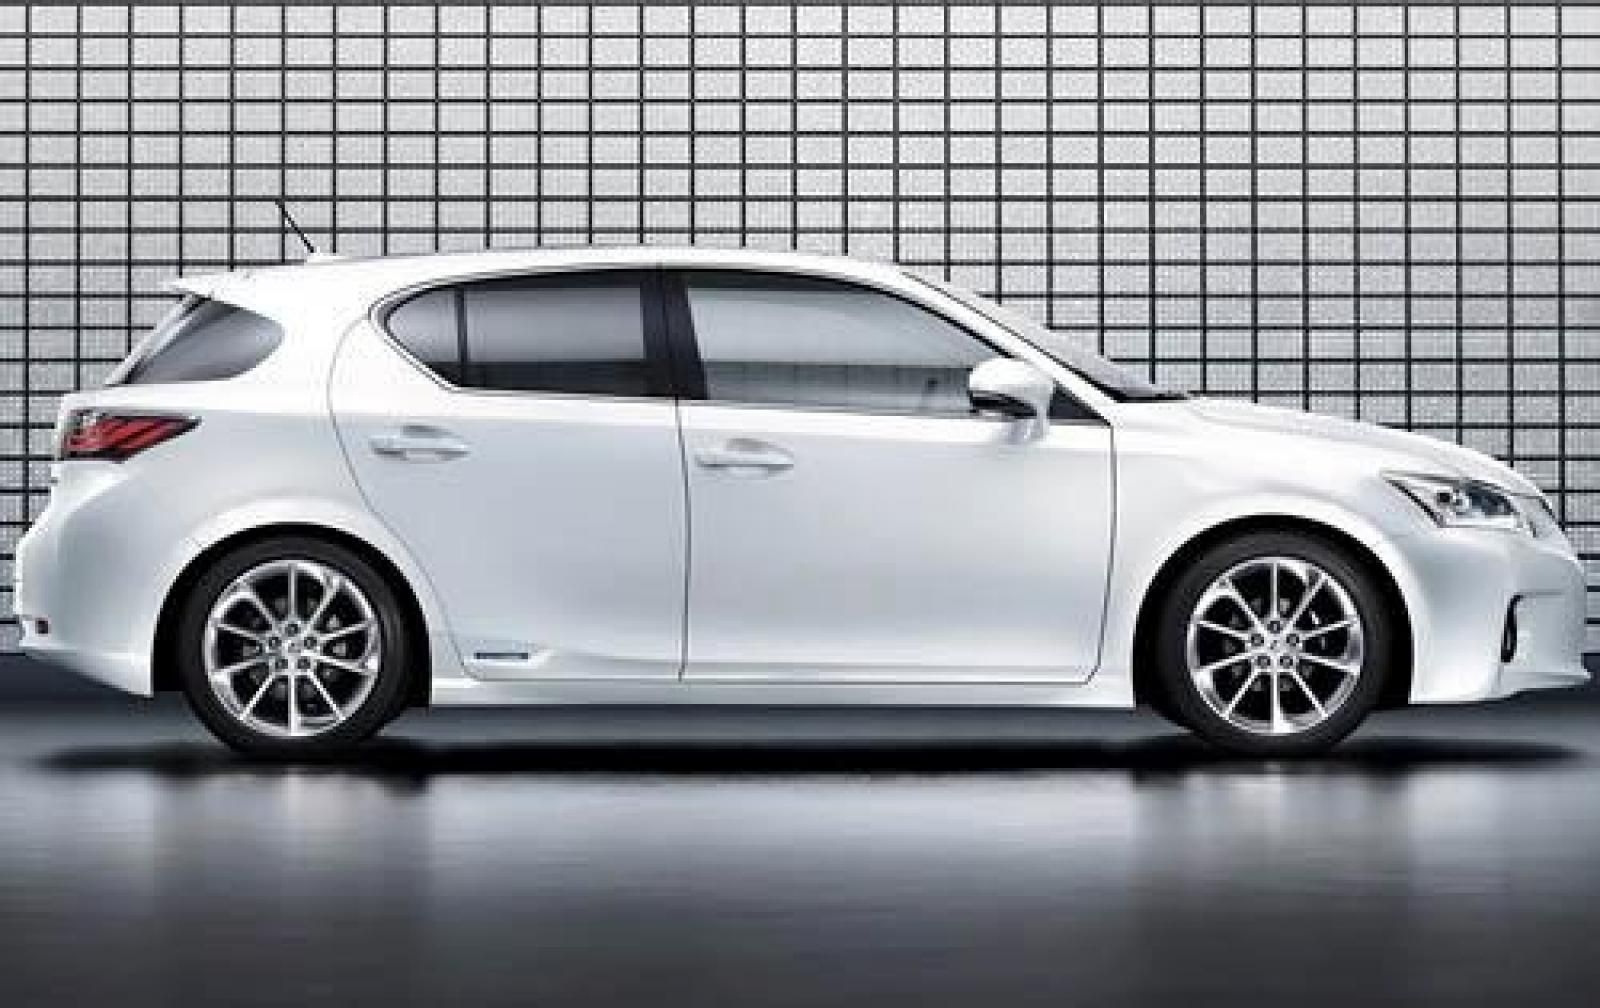 2011 Lexus Ct 200h Information And Photos Zombiedrive